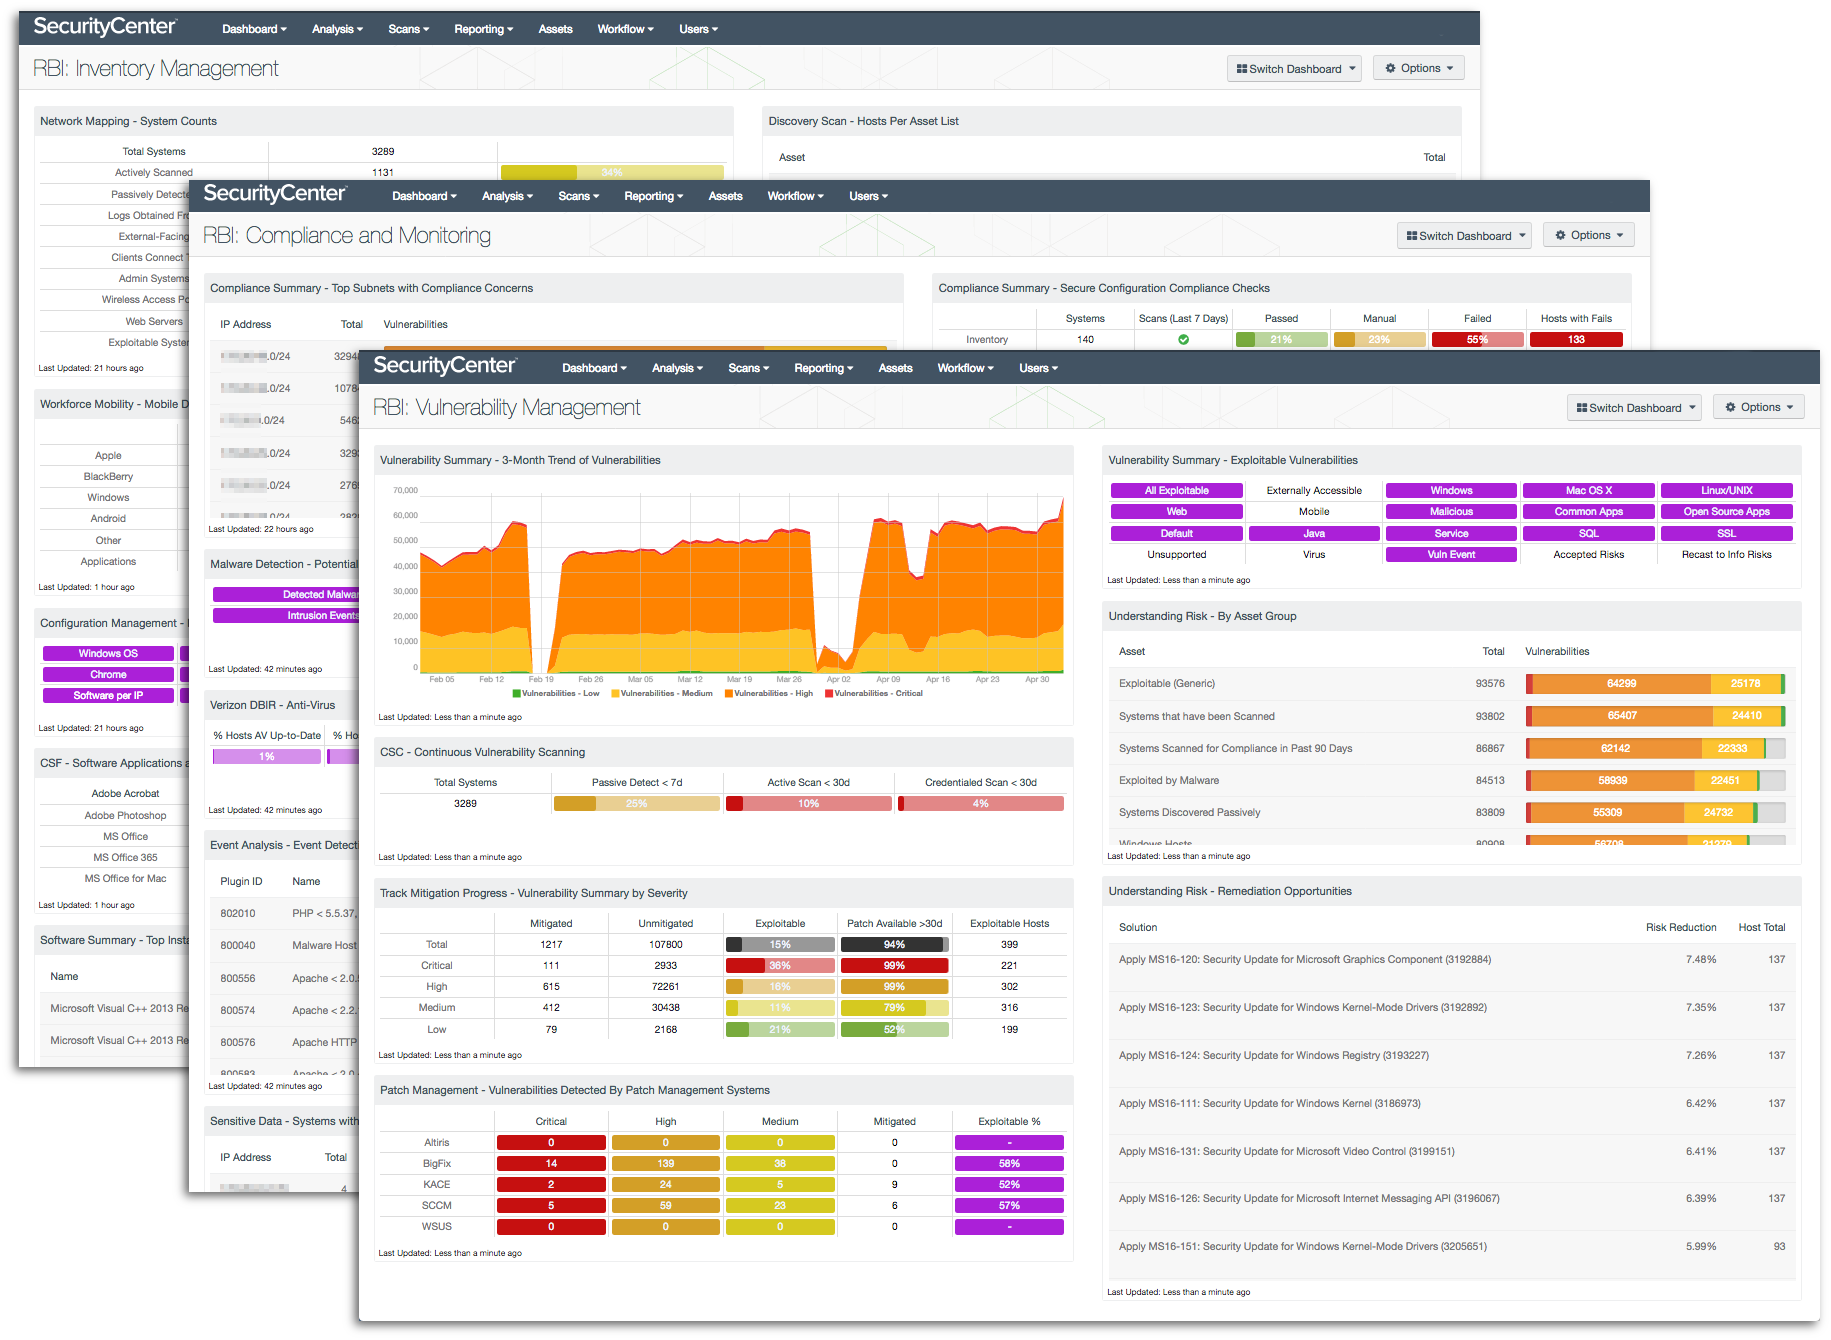 SecurityCenter RBI Dashboards